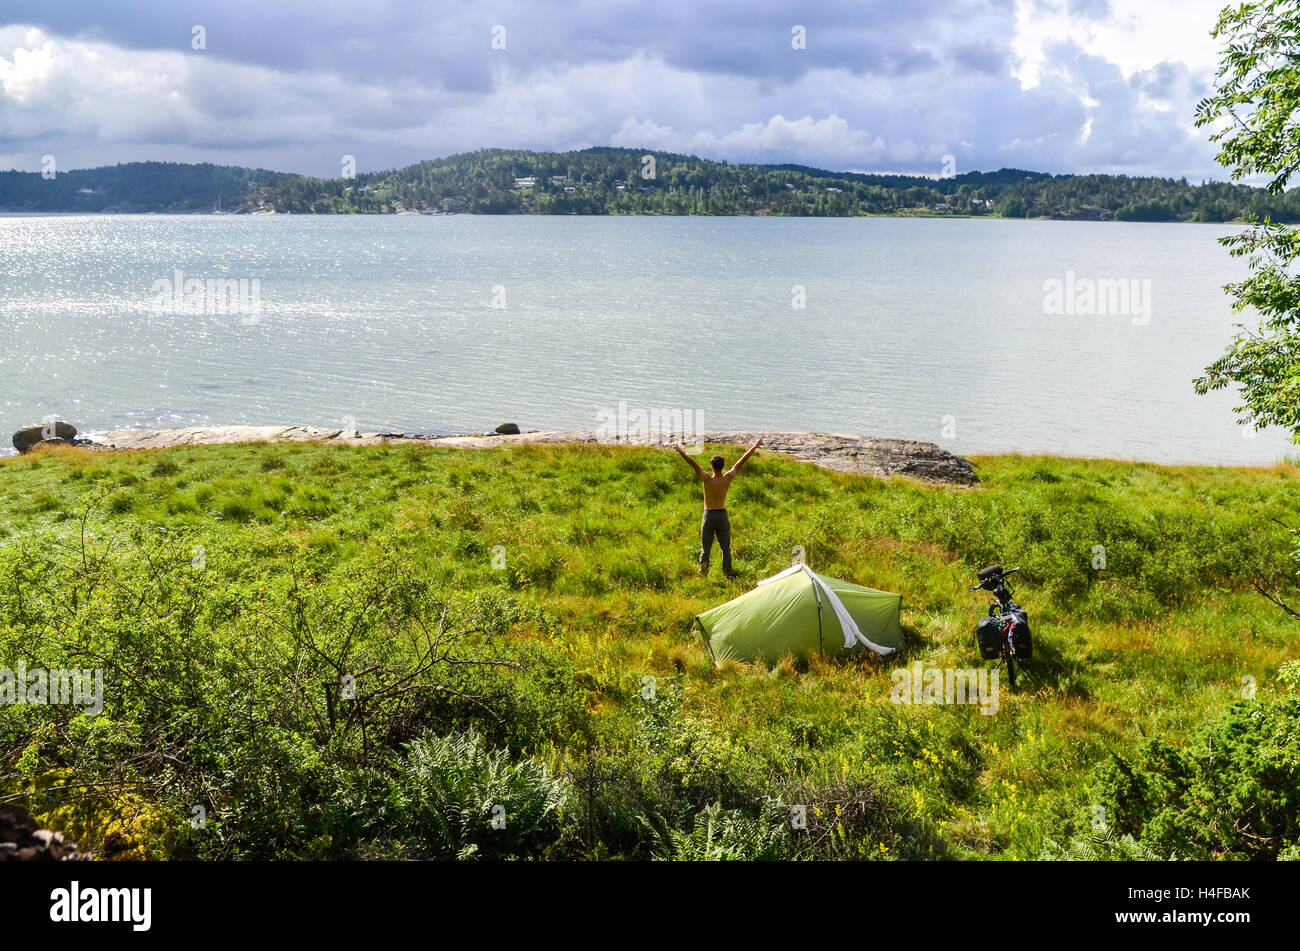 Man standing near tent after camping in Sweden (Orust) - Stock Image